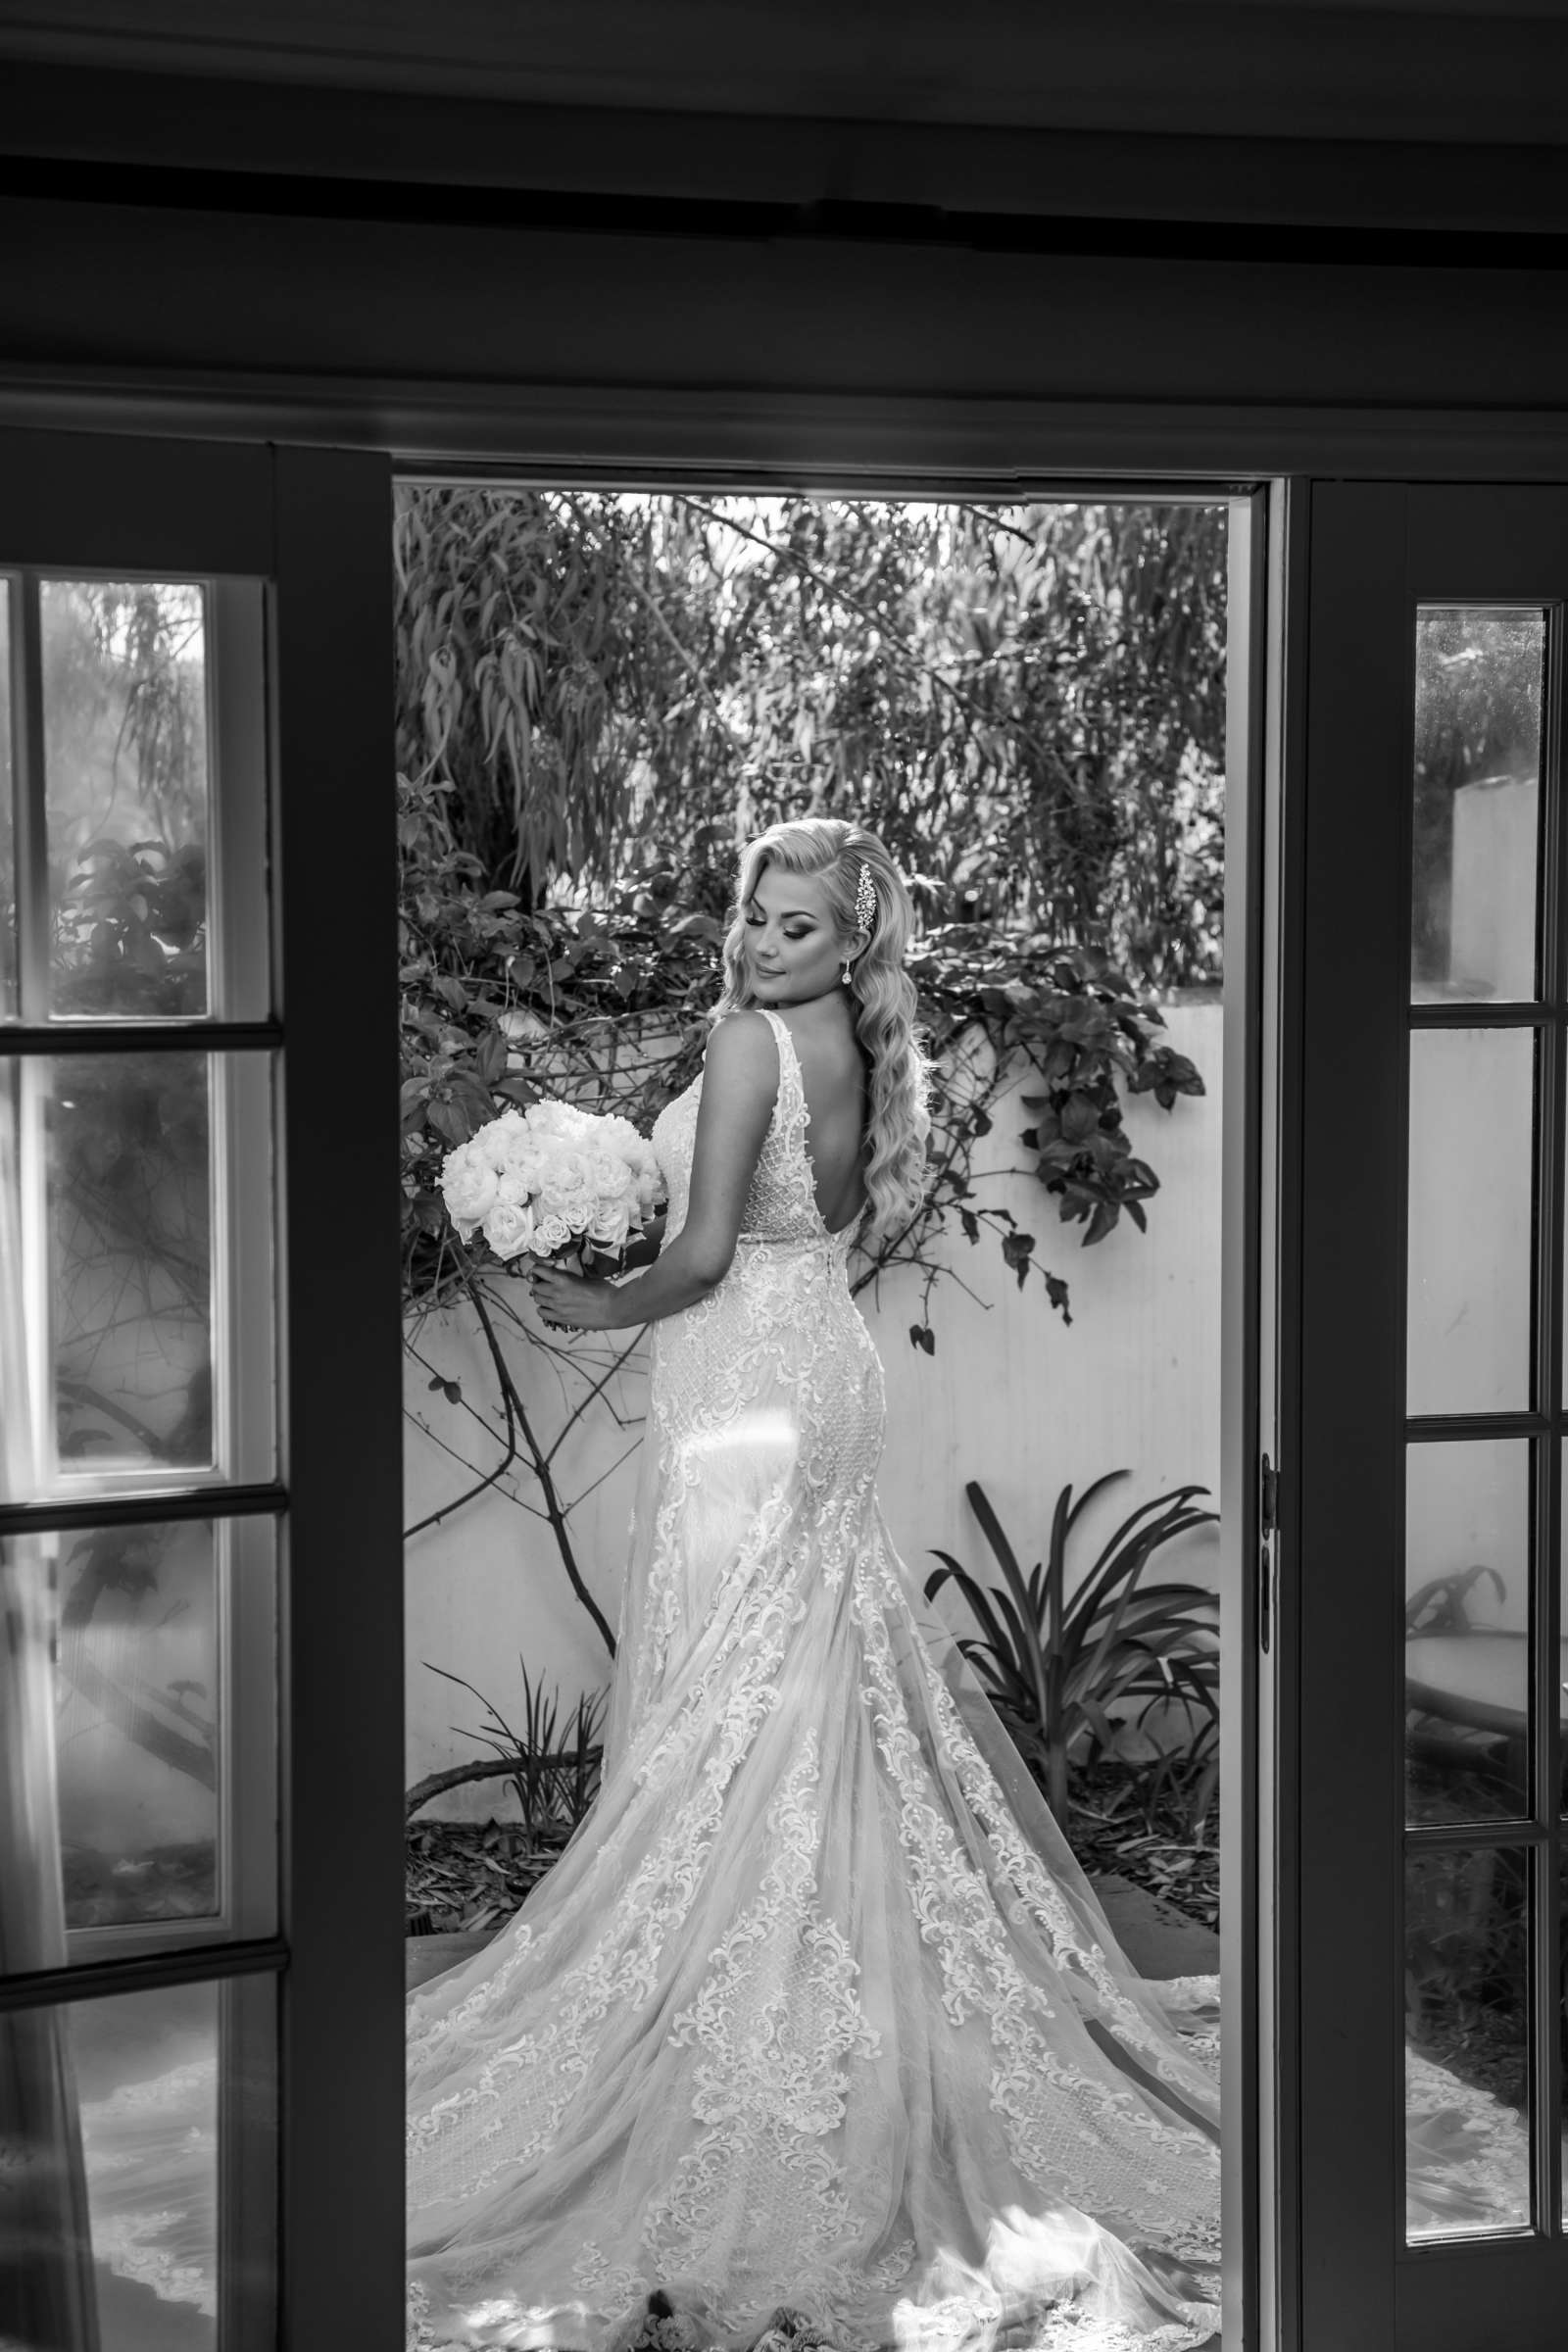 Omni La Costa Resort & Spa Wedding coordinated by SD Weddings by Gina, Jessica and Tom Wedding Photo #571772 by True Photography